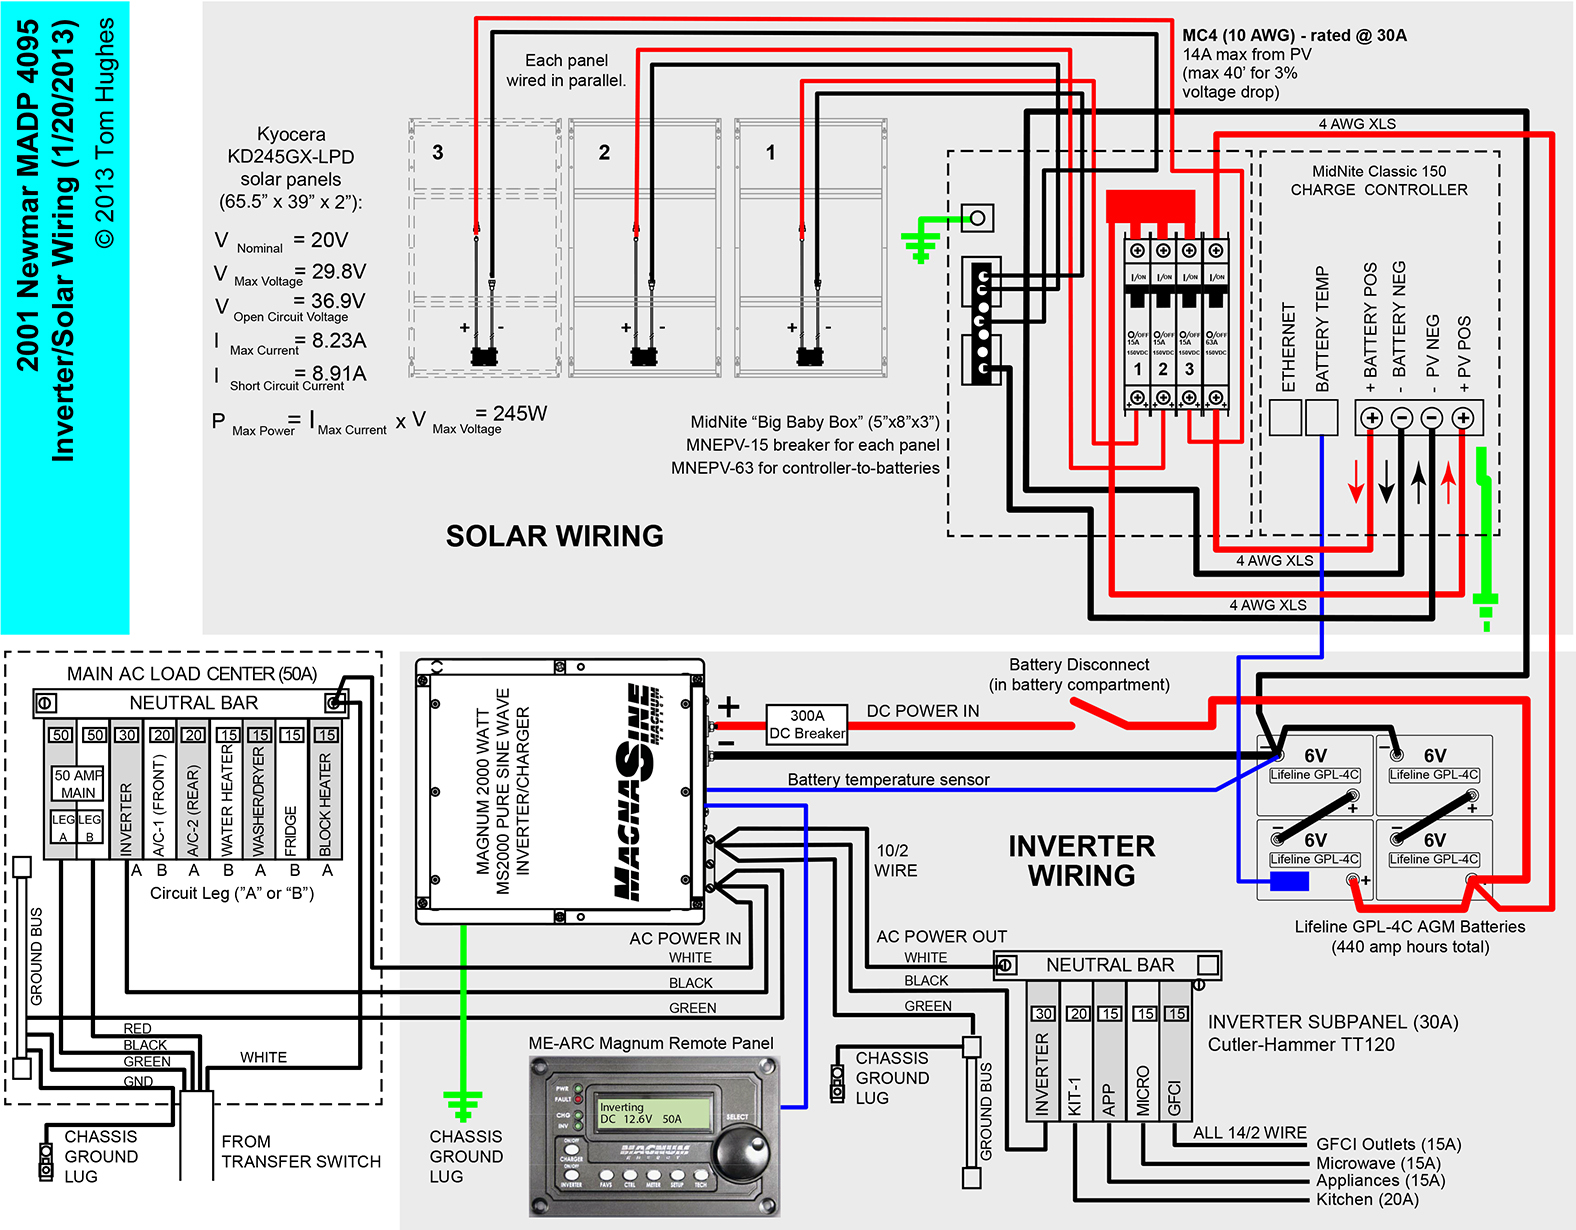 Quick Reference Charts furthermore My House Wiring Is Red Black And White green Ground The Fans Wiring Is Blue Black And White green Ground How Should This Be Wired likewise Rv Electric Brake Diagram as well Rv electrical furthermore How To Connect Portable Generator To Home Supply. on typical rv wiring diagram